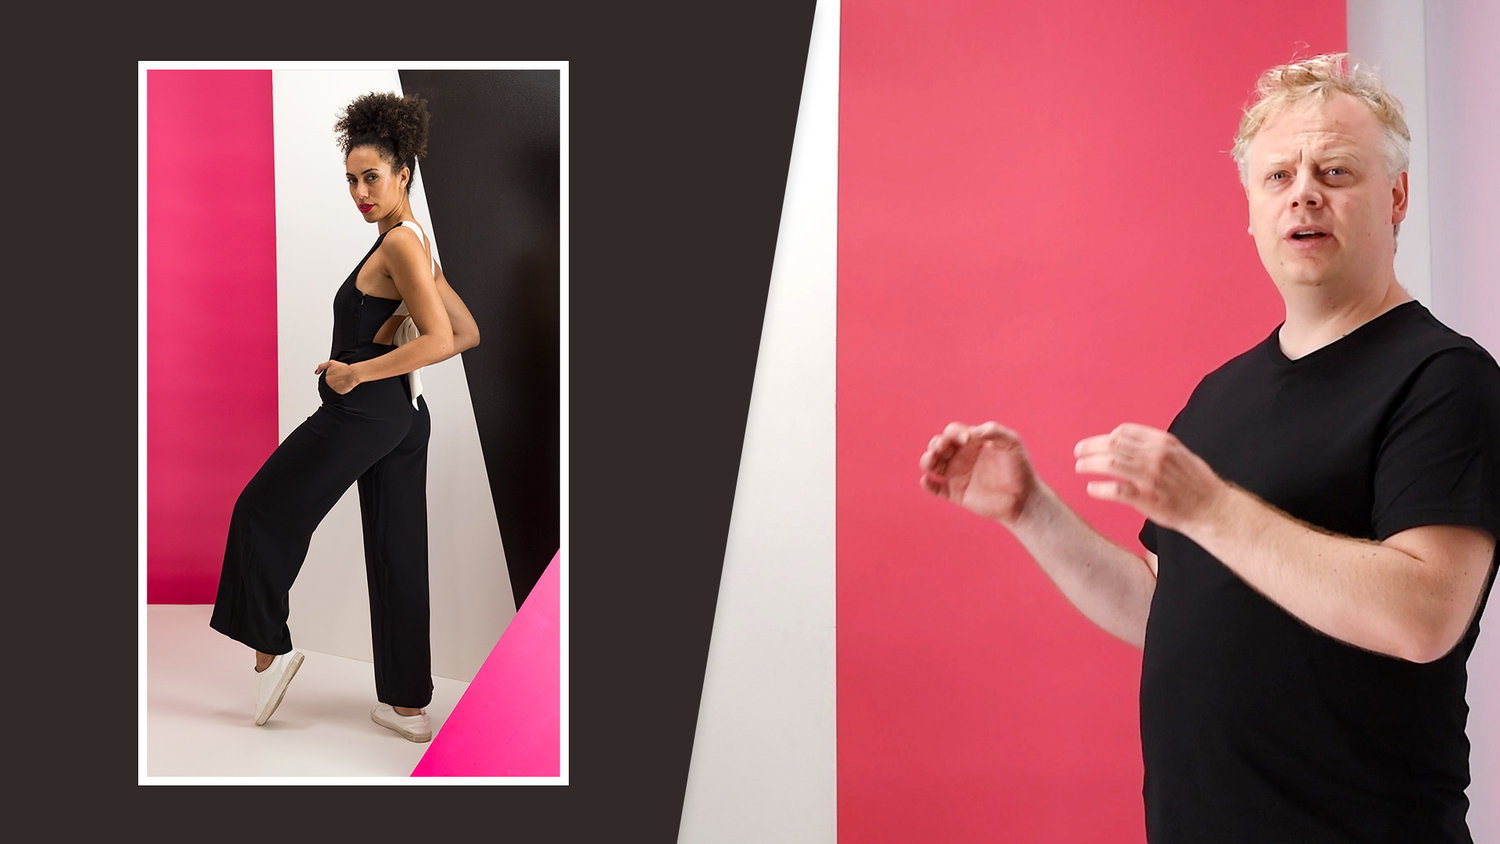 How to successfully run a photoshoot and direct your model